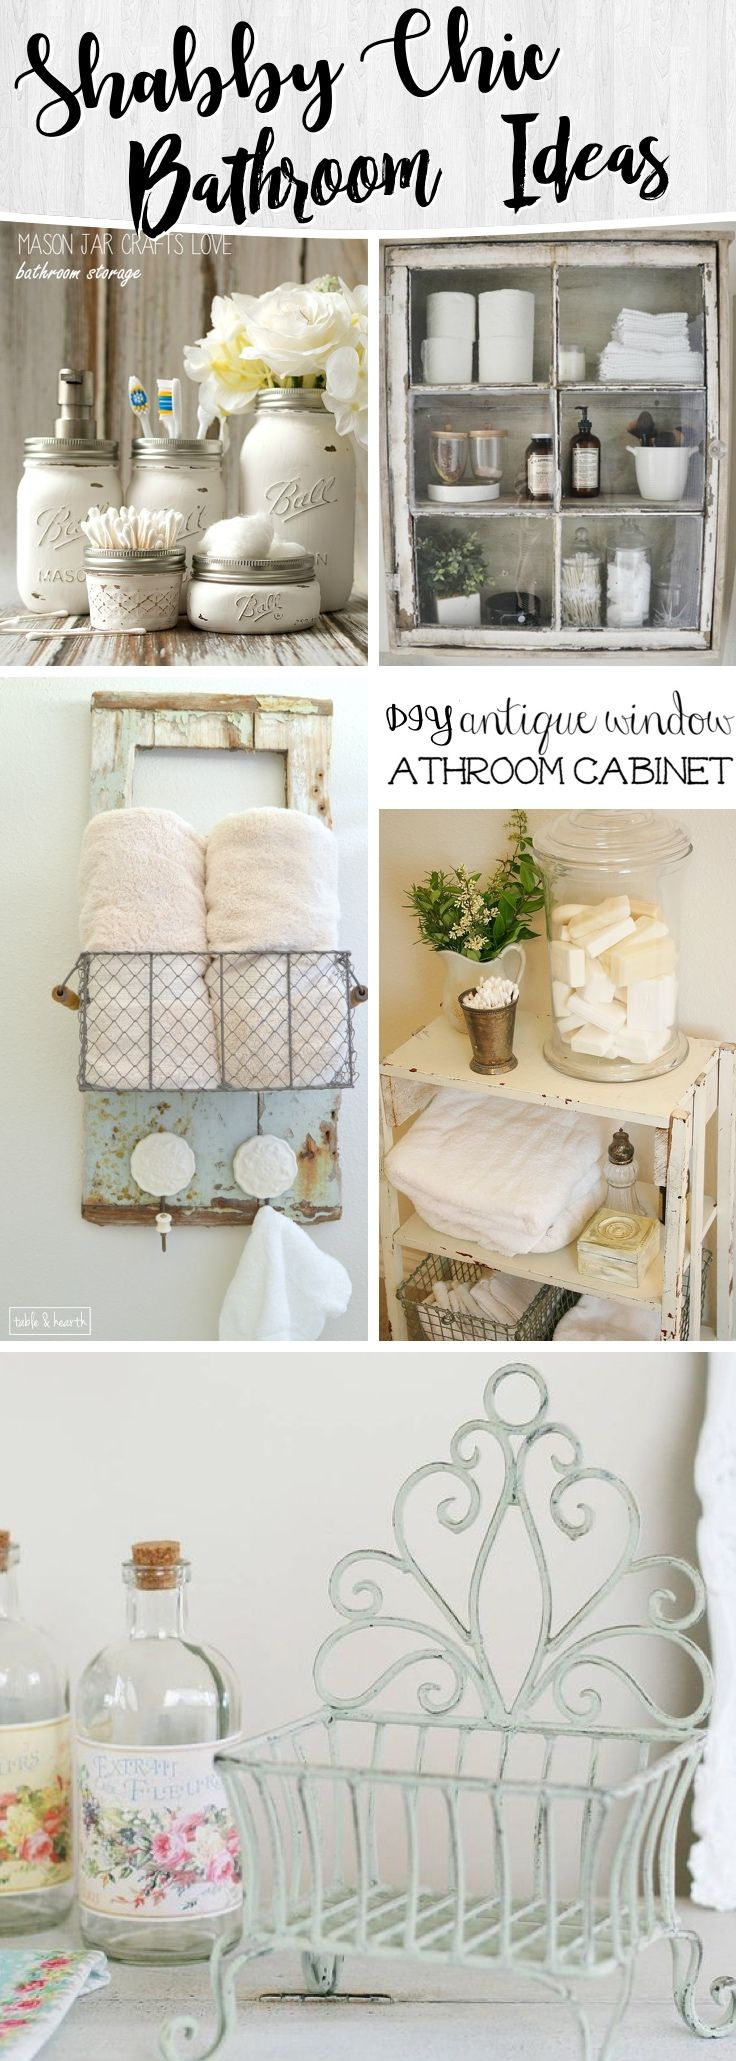 15 Shabby Chic Bathroom Ideas Transforming Your Space From Simple To